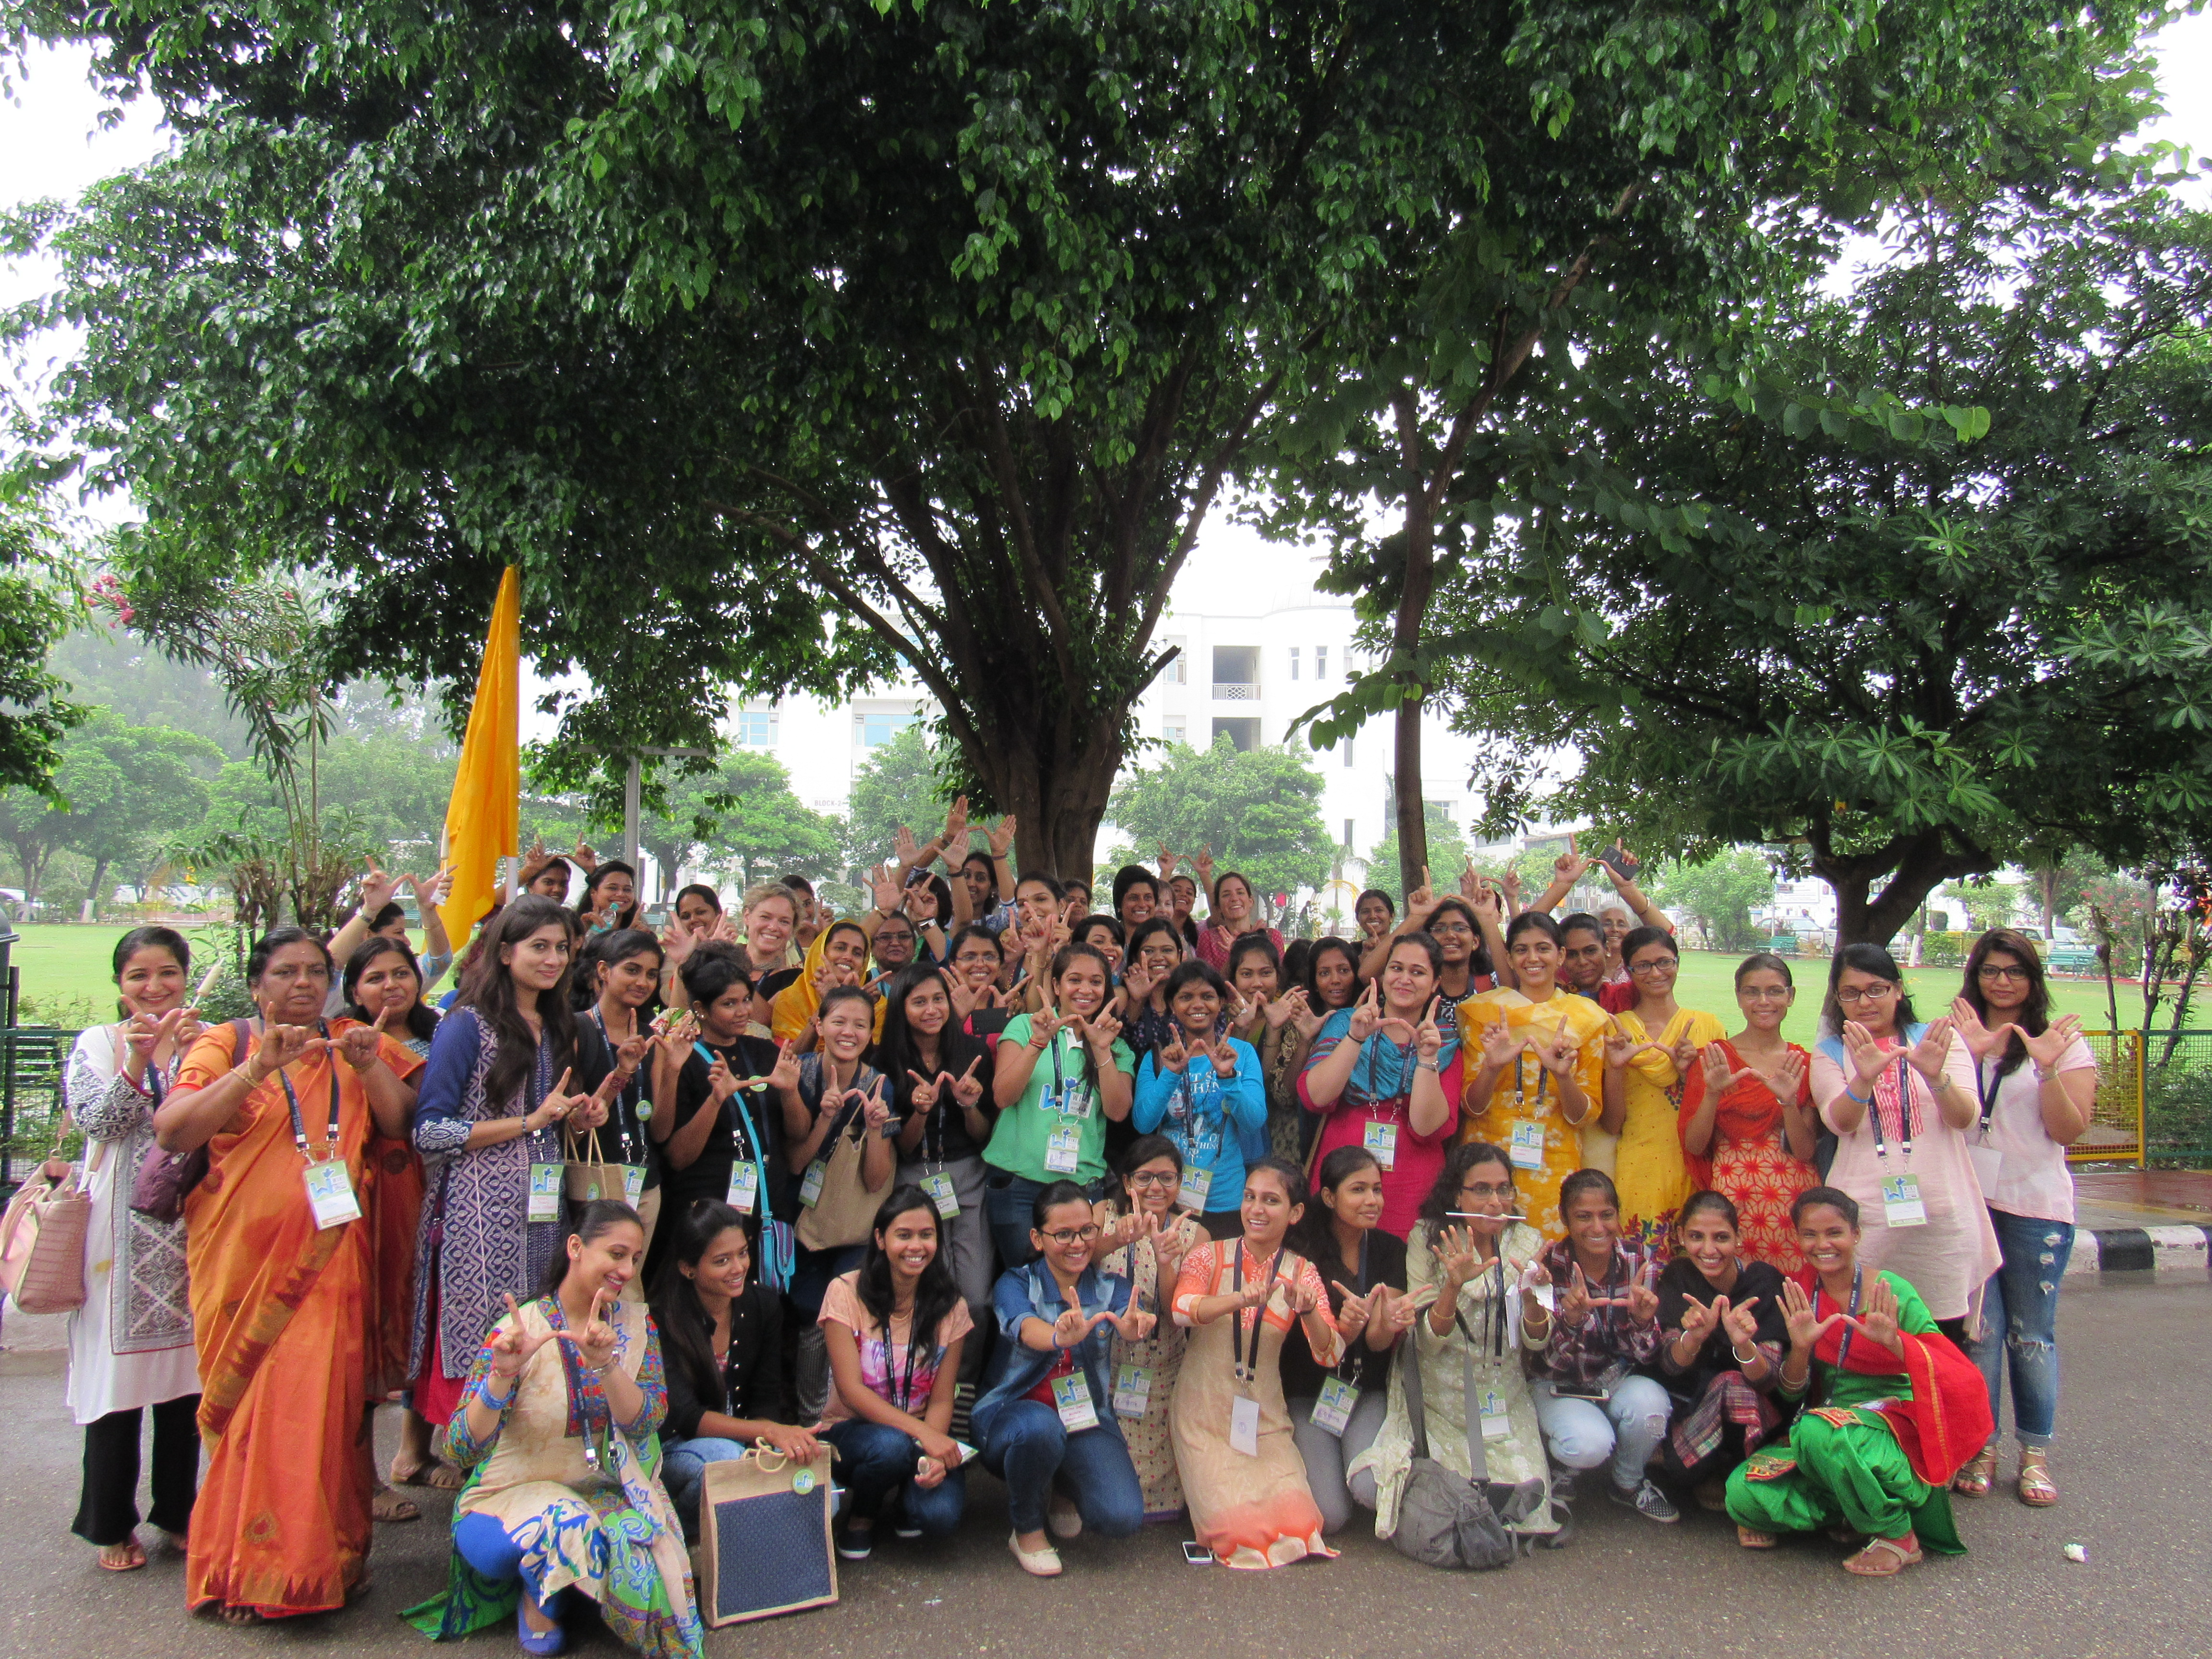 Group_photo_of_women_wikipedian_with_Katherine_Maher_at_WikiConference_India_2016,_6_August_2016_3